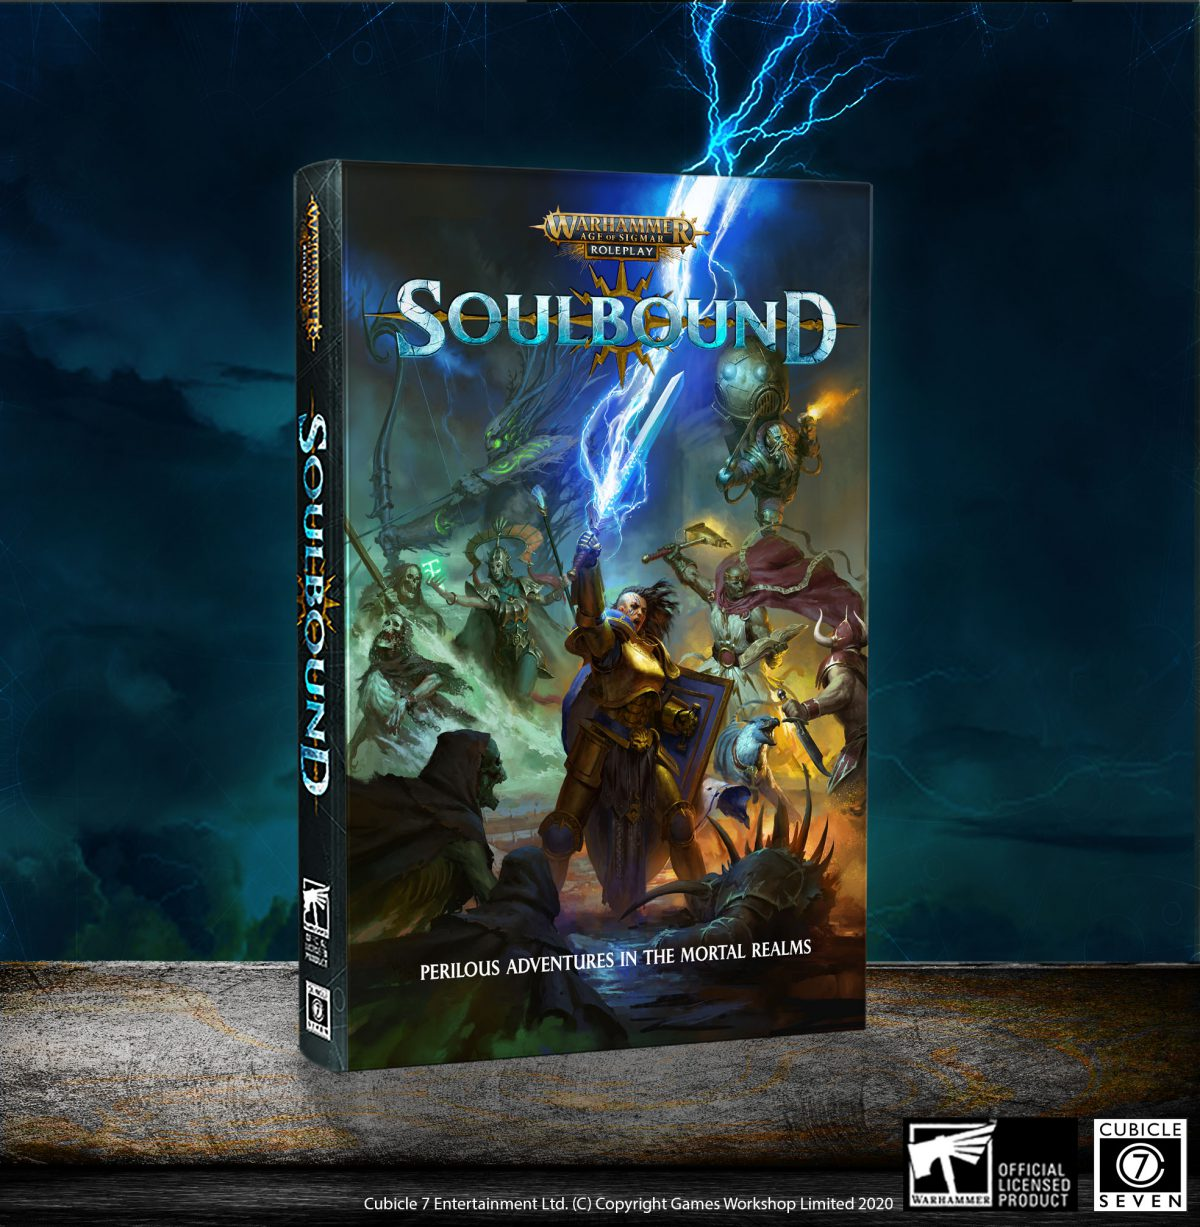 Warhammer: Age of Sigmar: Soulbound Interview